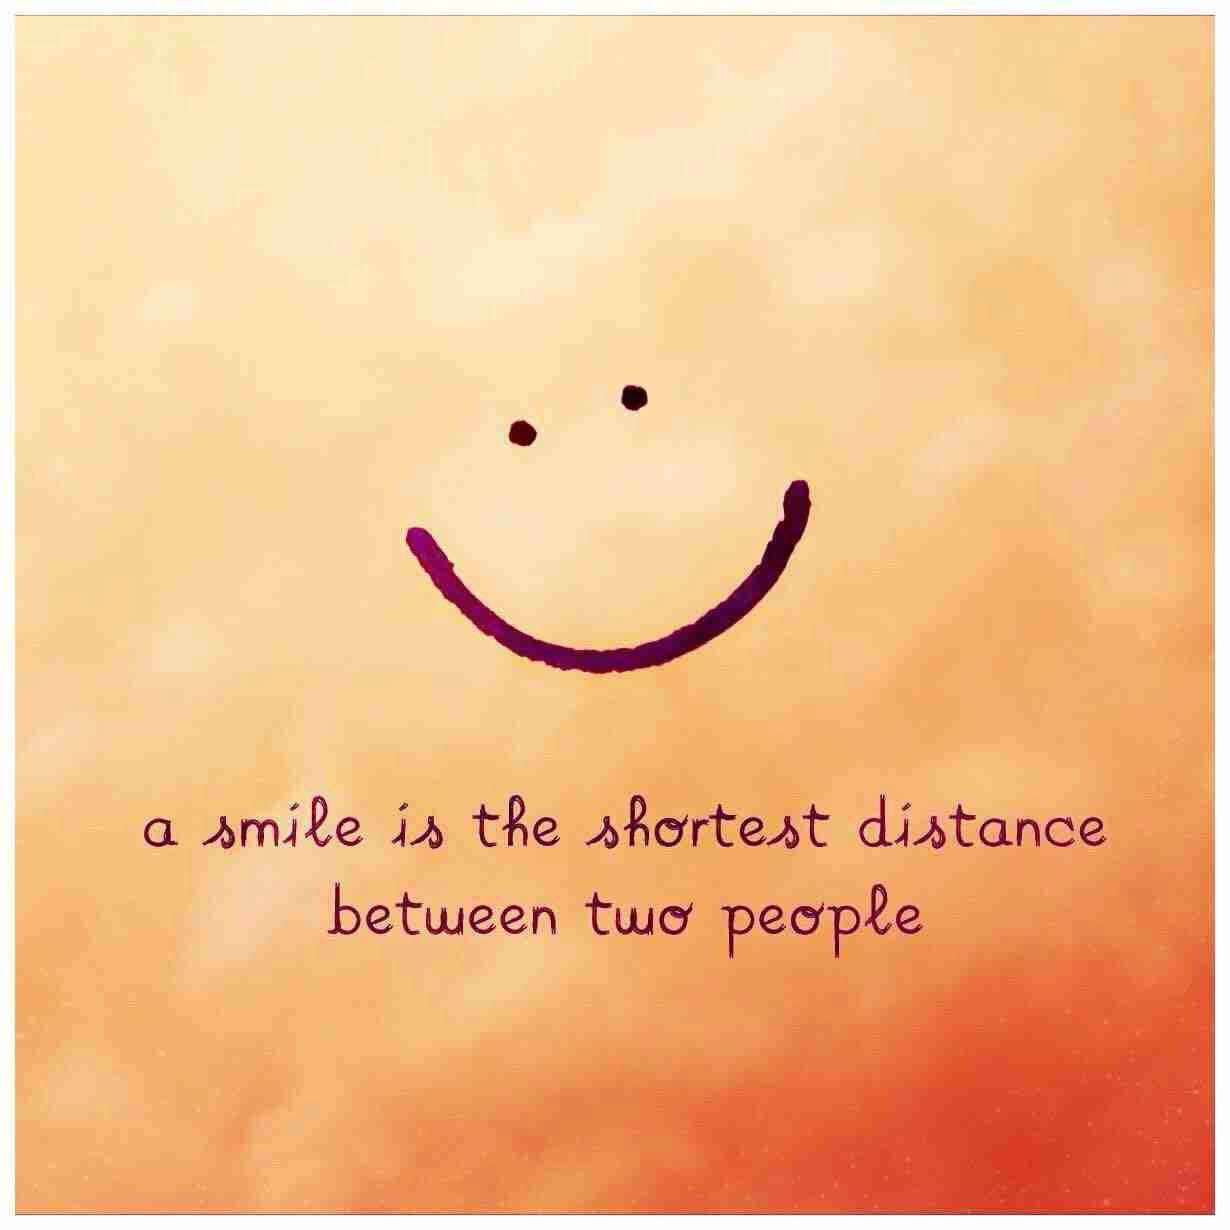 dont forget to smile have a great sunday ahead stay